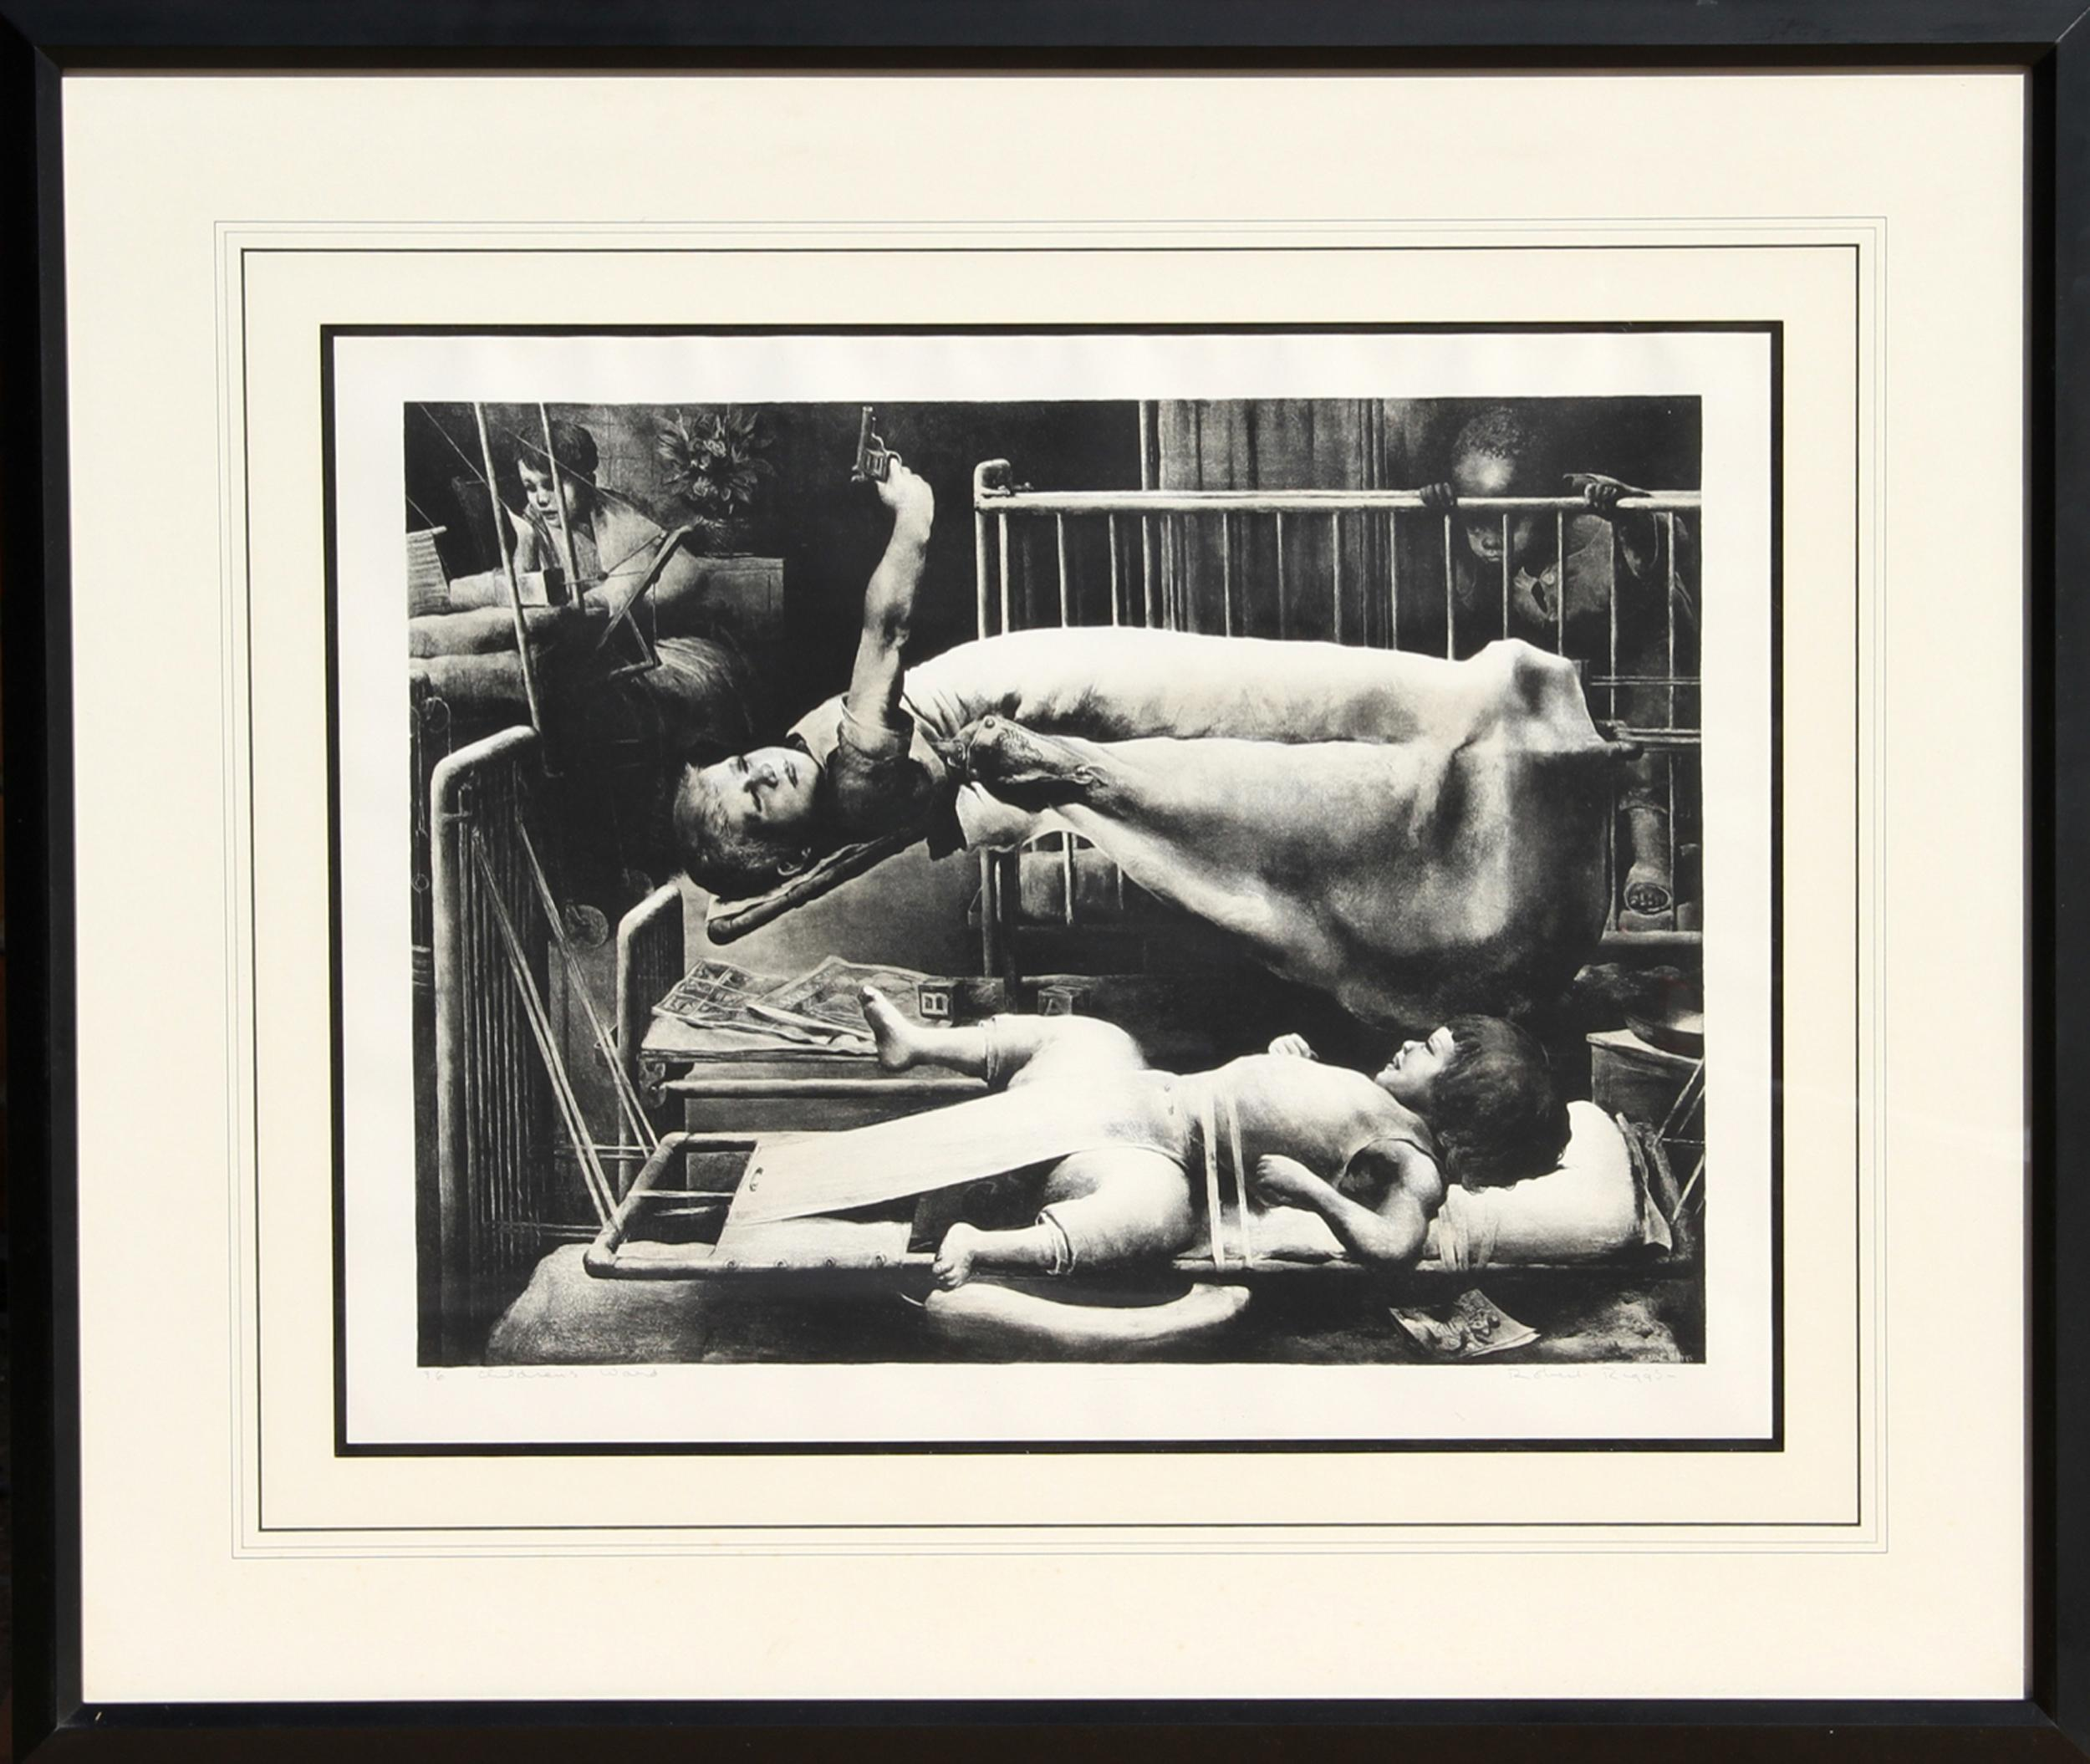 Robert Riggs, Children's Ward, Lithograph